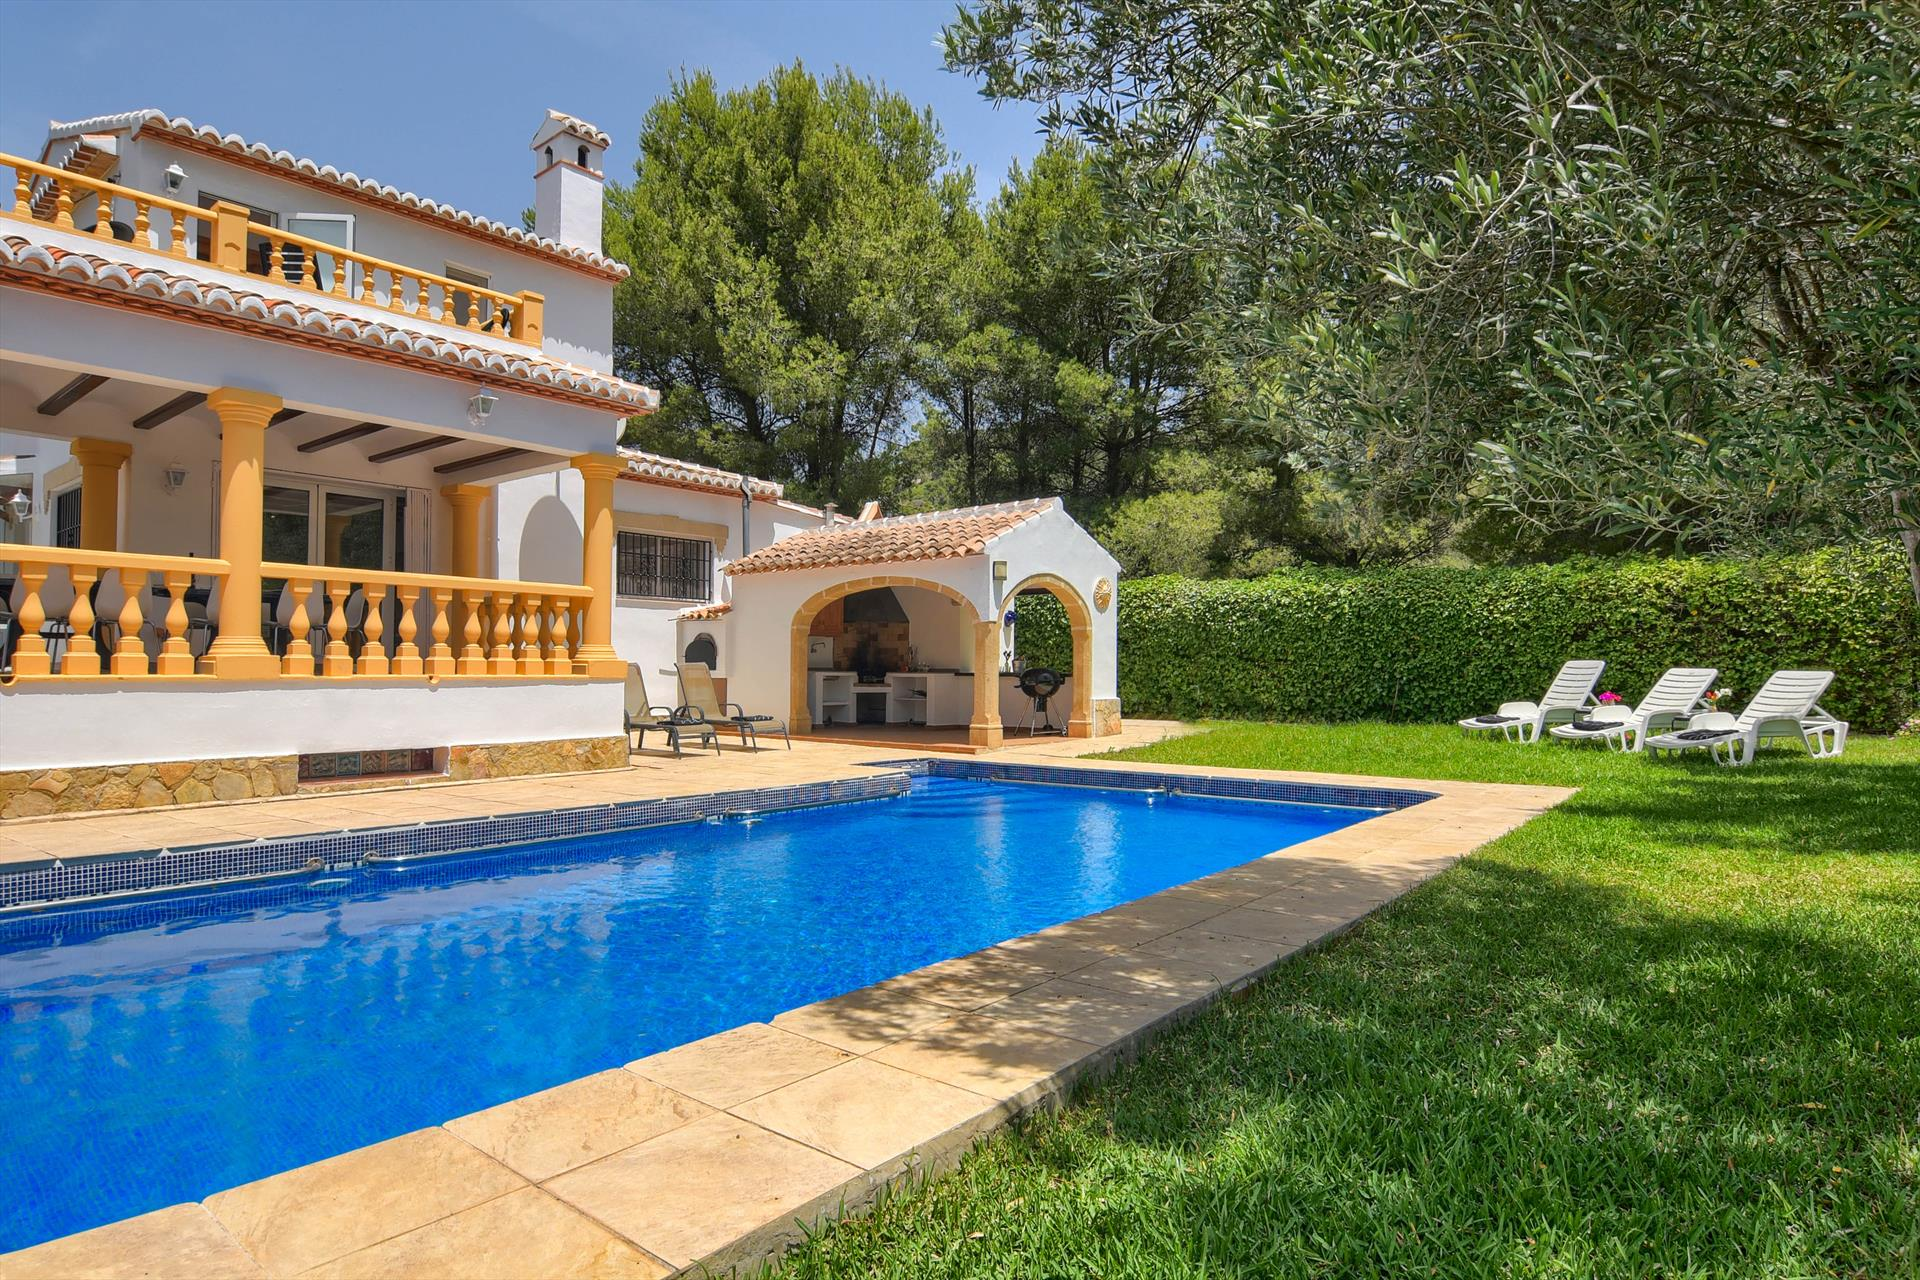 Mandarin 10 pax, Large and cheerful villa in Javea, on the Costa Blanca, Spain  with private pool for 10 persons.....